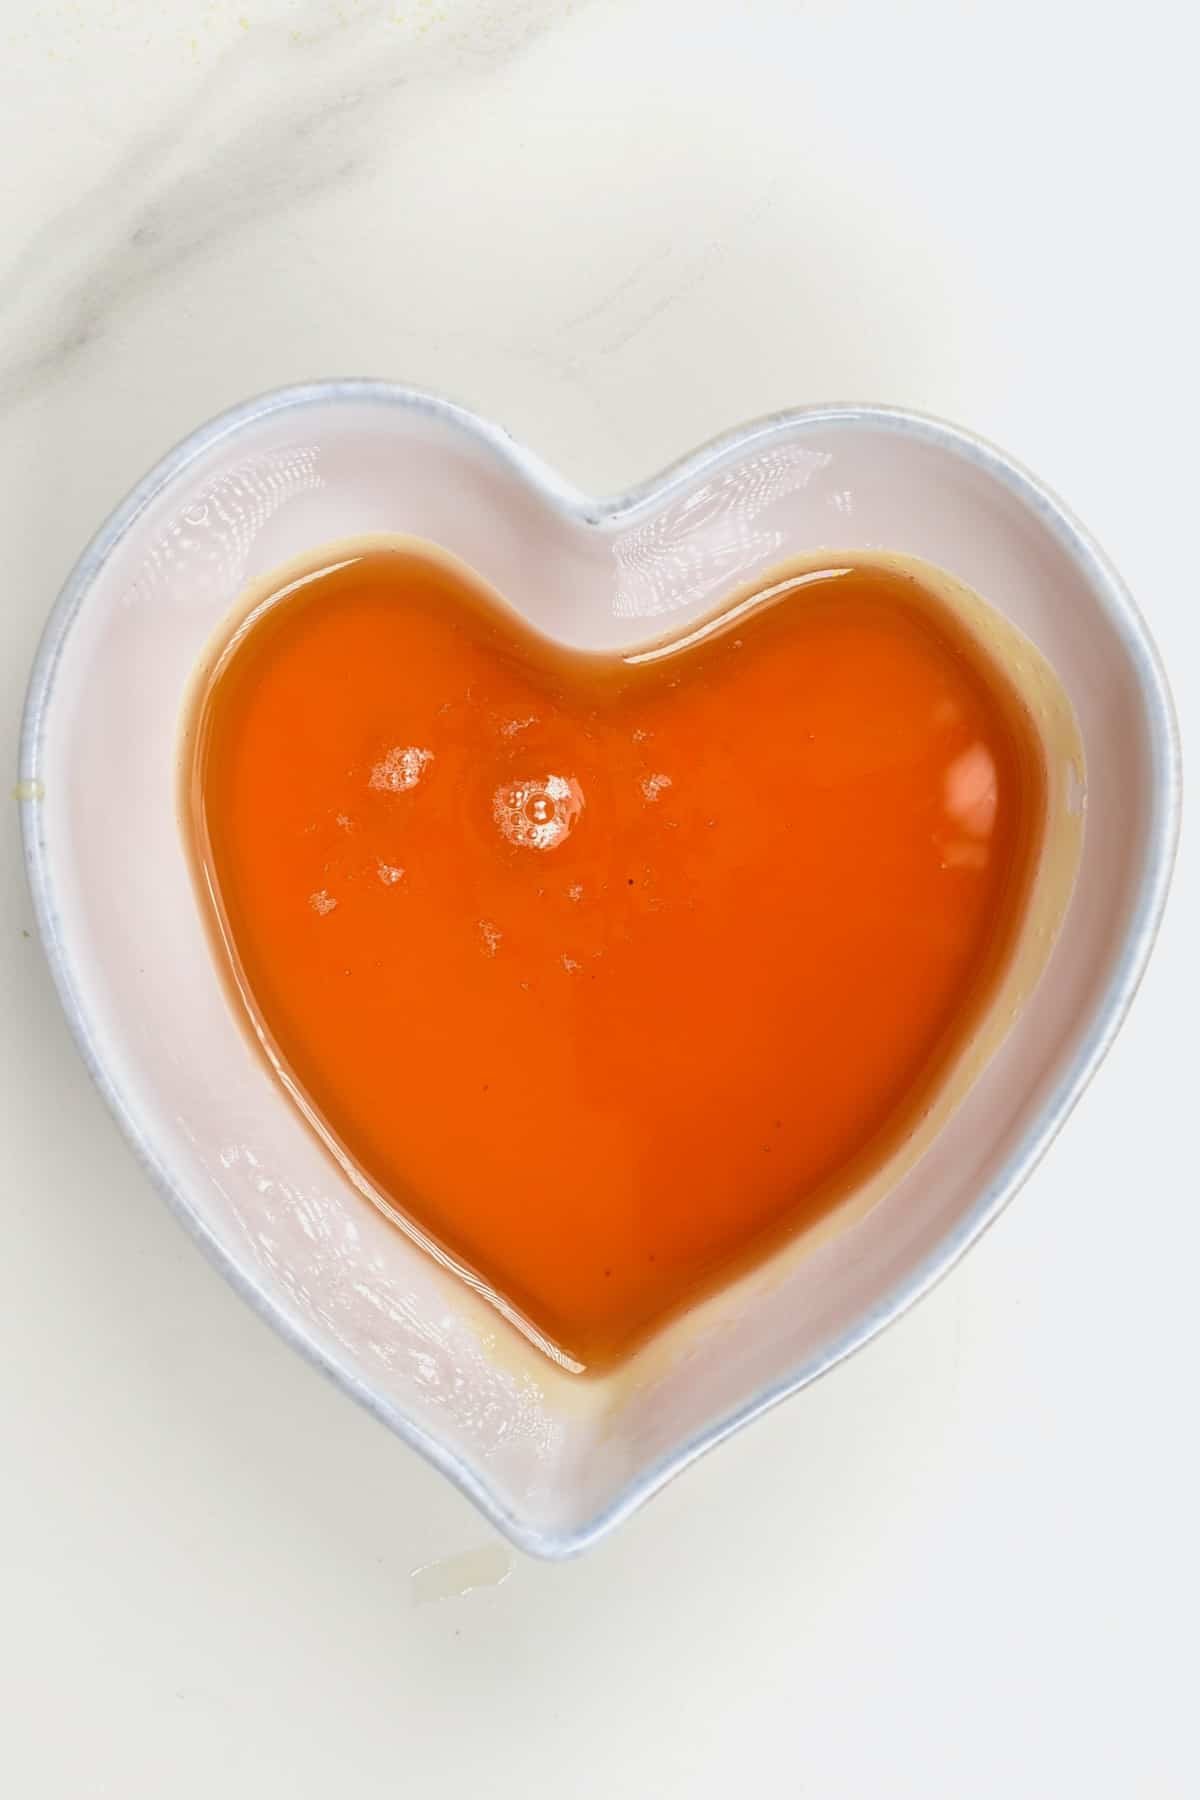 Dandelion syrup in a heart shaped bowl